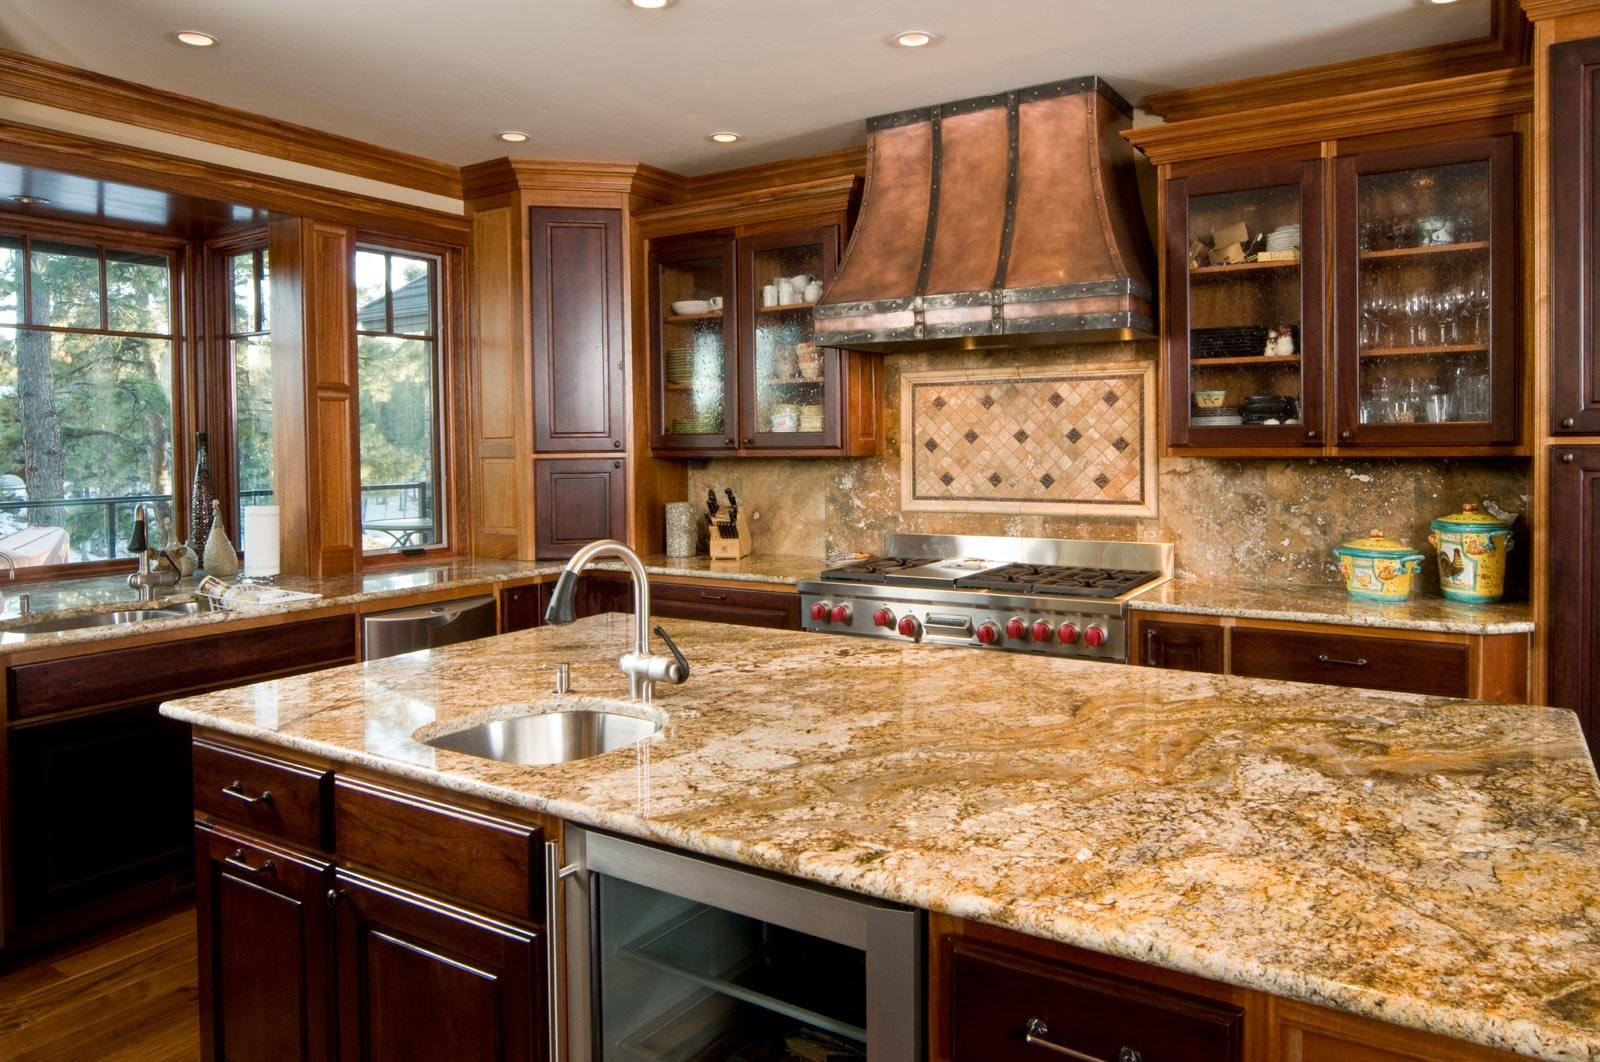 Countertops Austin by Bill Parsons | Austin's Premier Place for ...